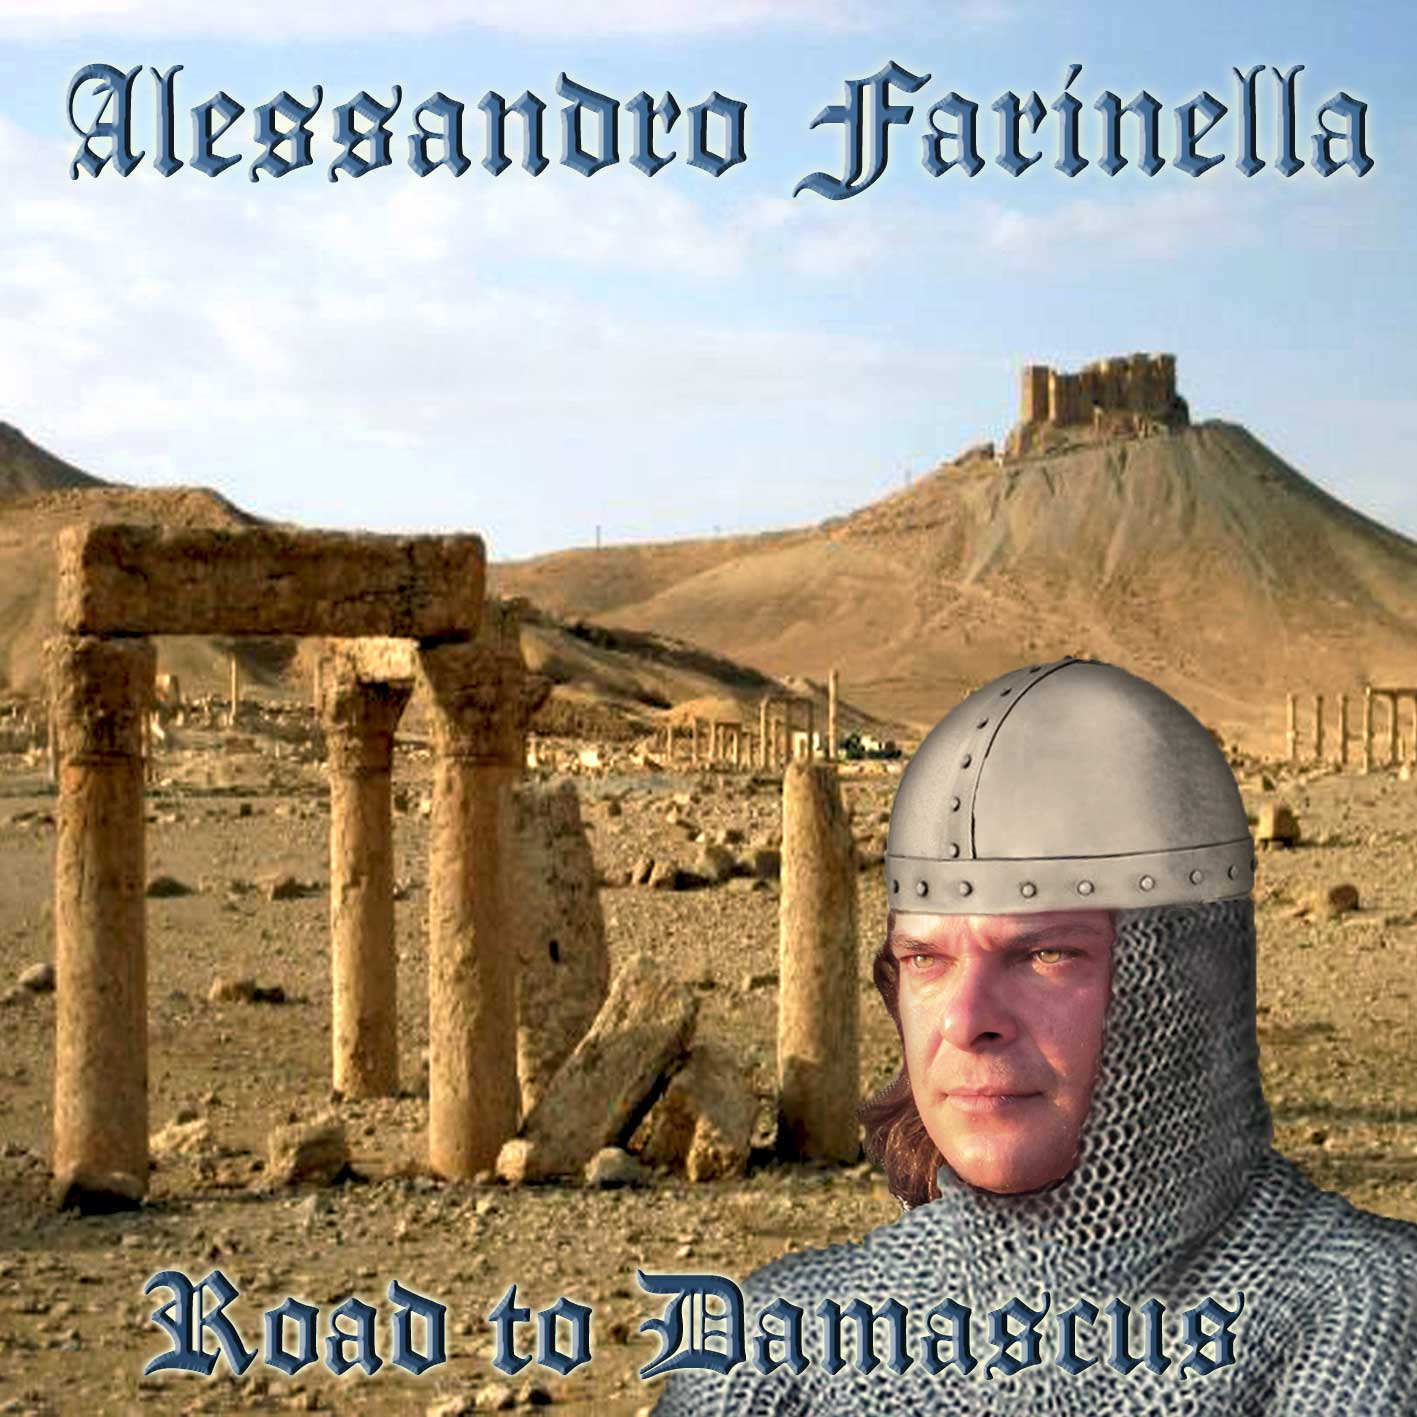 ALESSANDRO FARINELLA - ROAD TO DAMASCUS (CD)